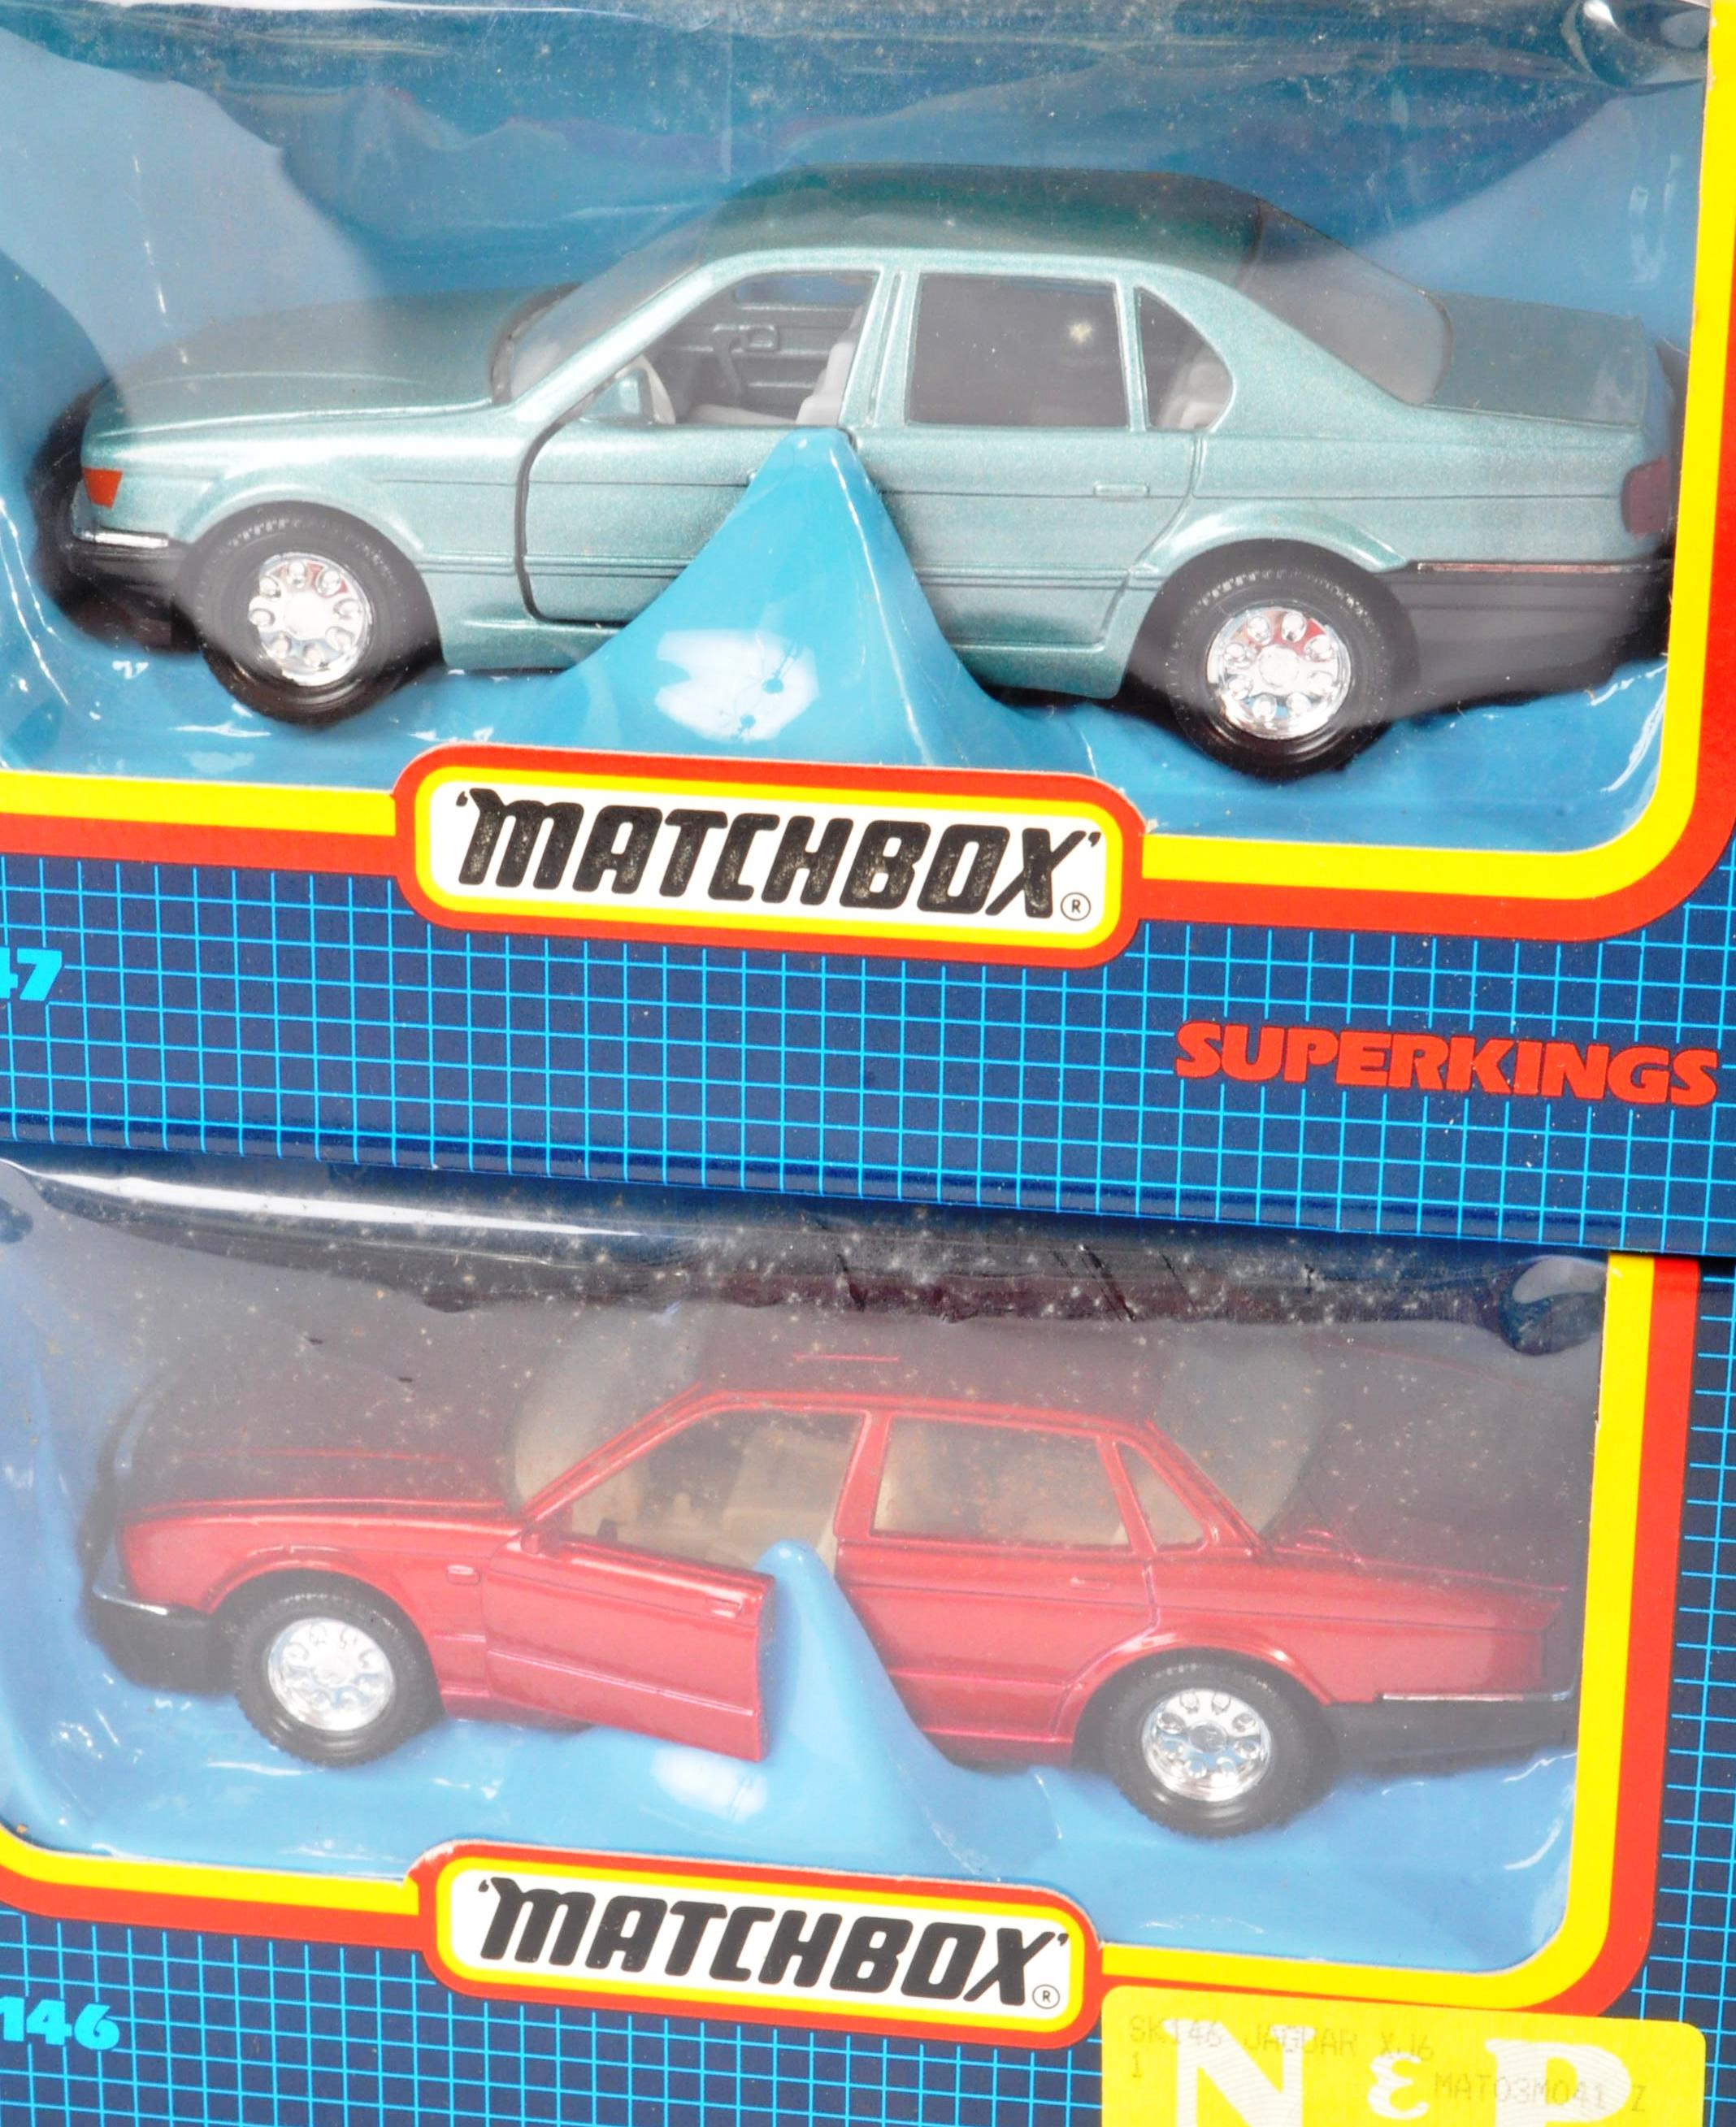 COLLECTION OF VINTAGE MATCHBOX SUPERKINGS DIECAST MODELS - Image 5 of 6